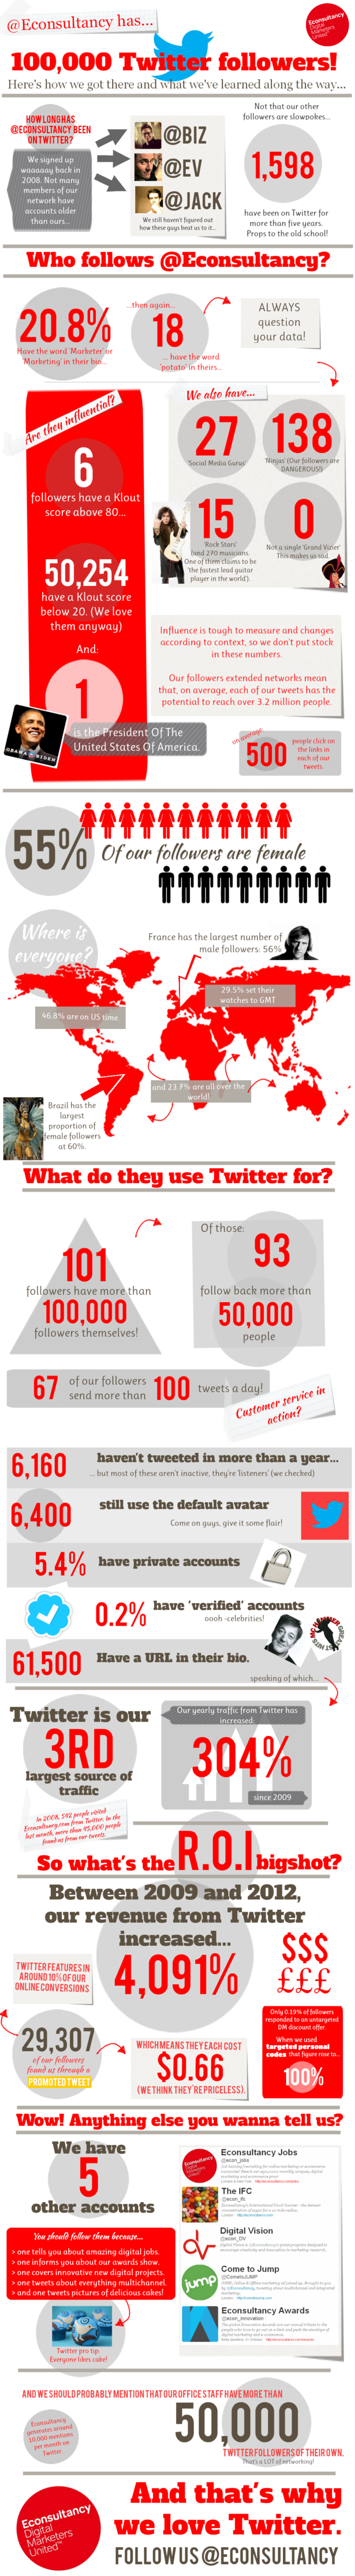 econsultancy has 100000 twitter followers